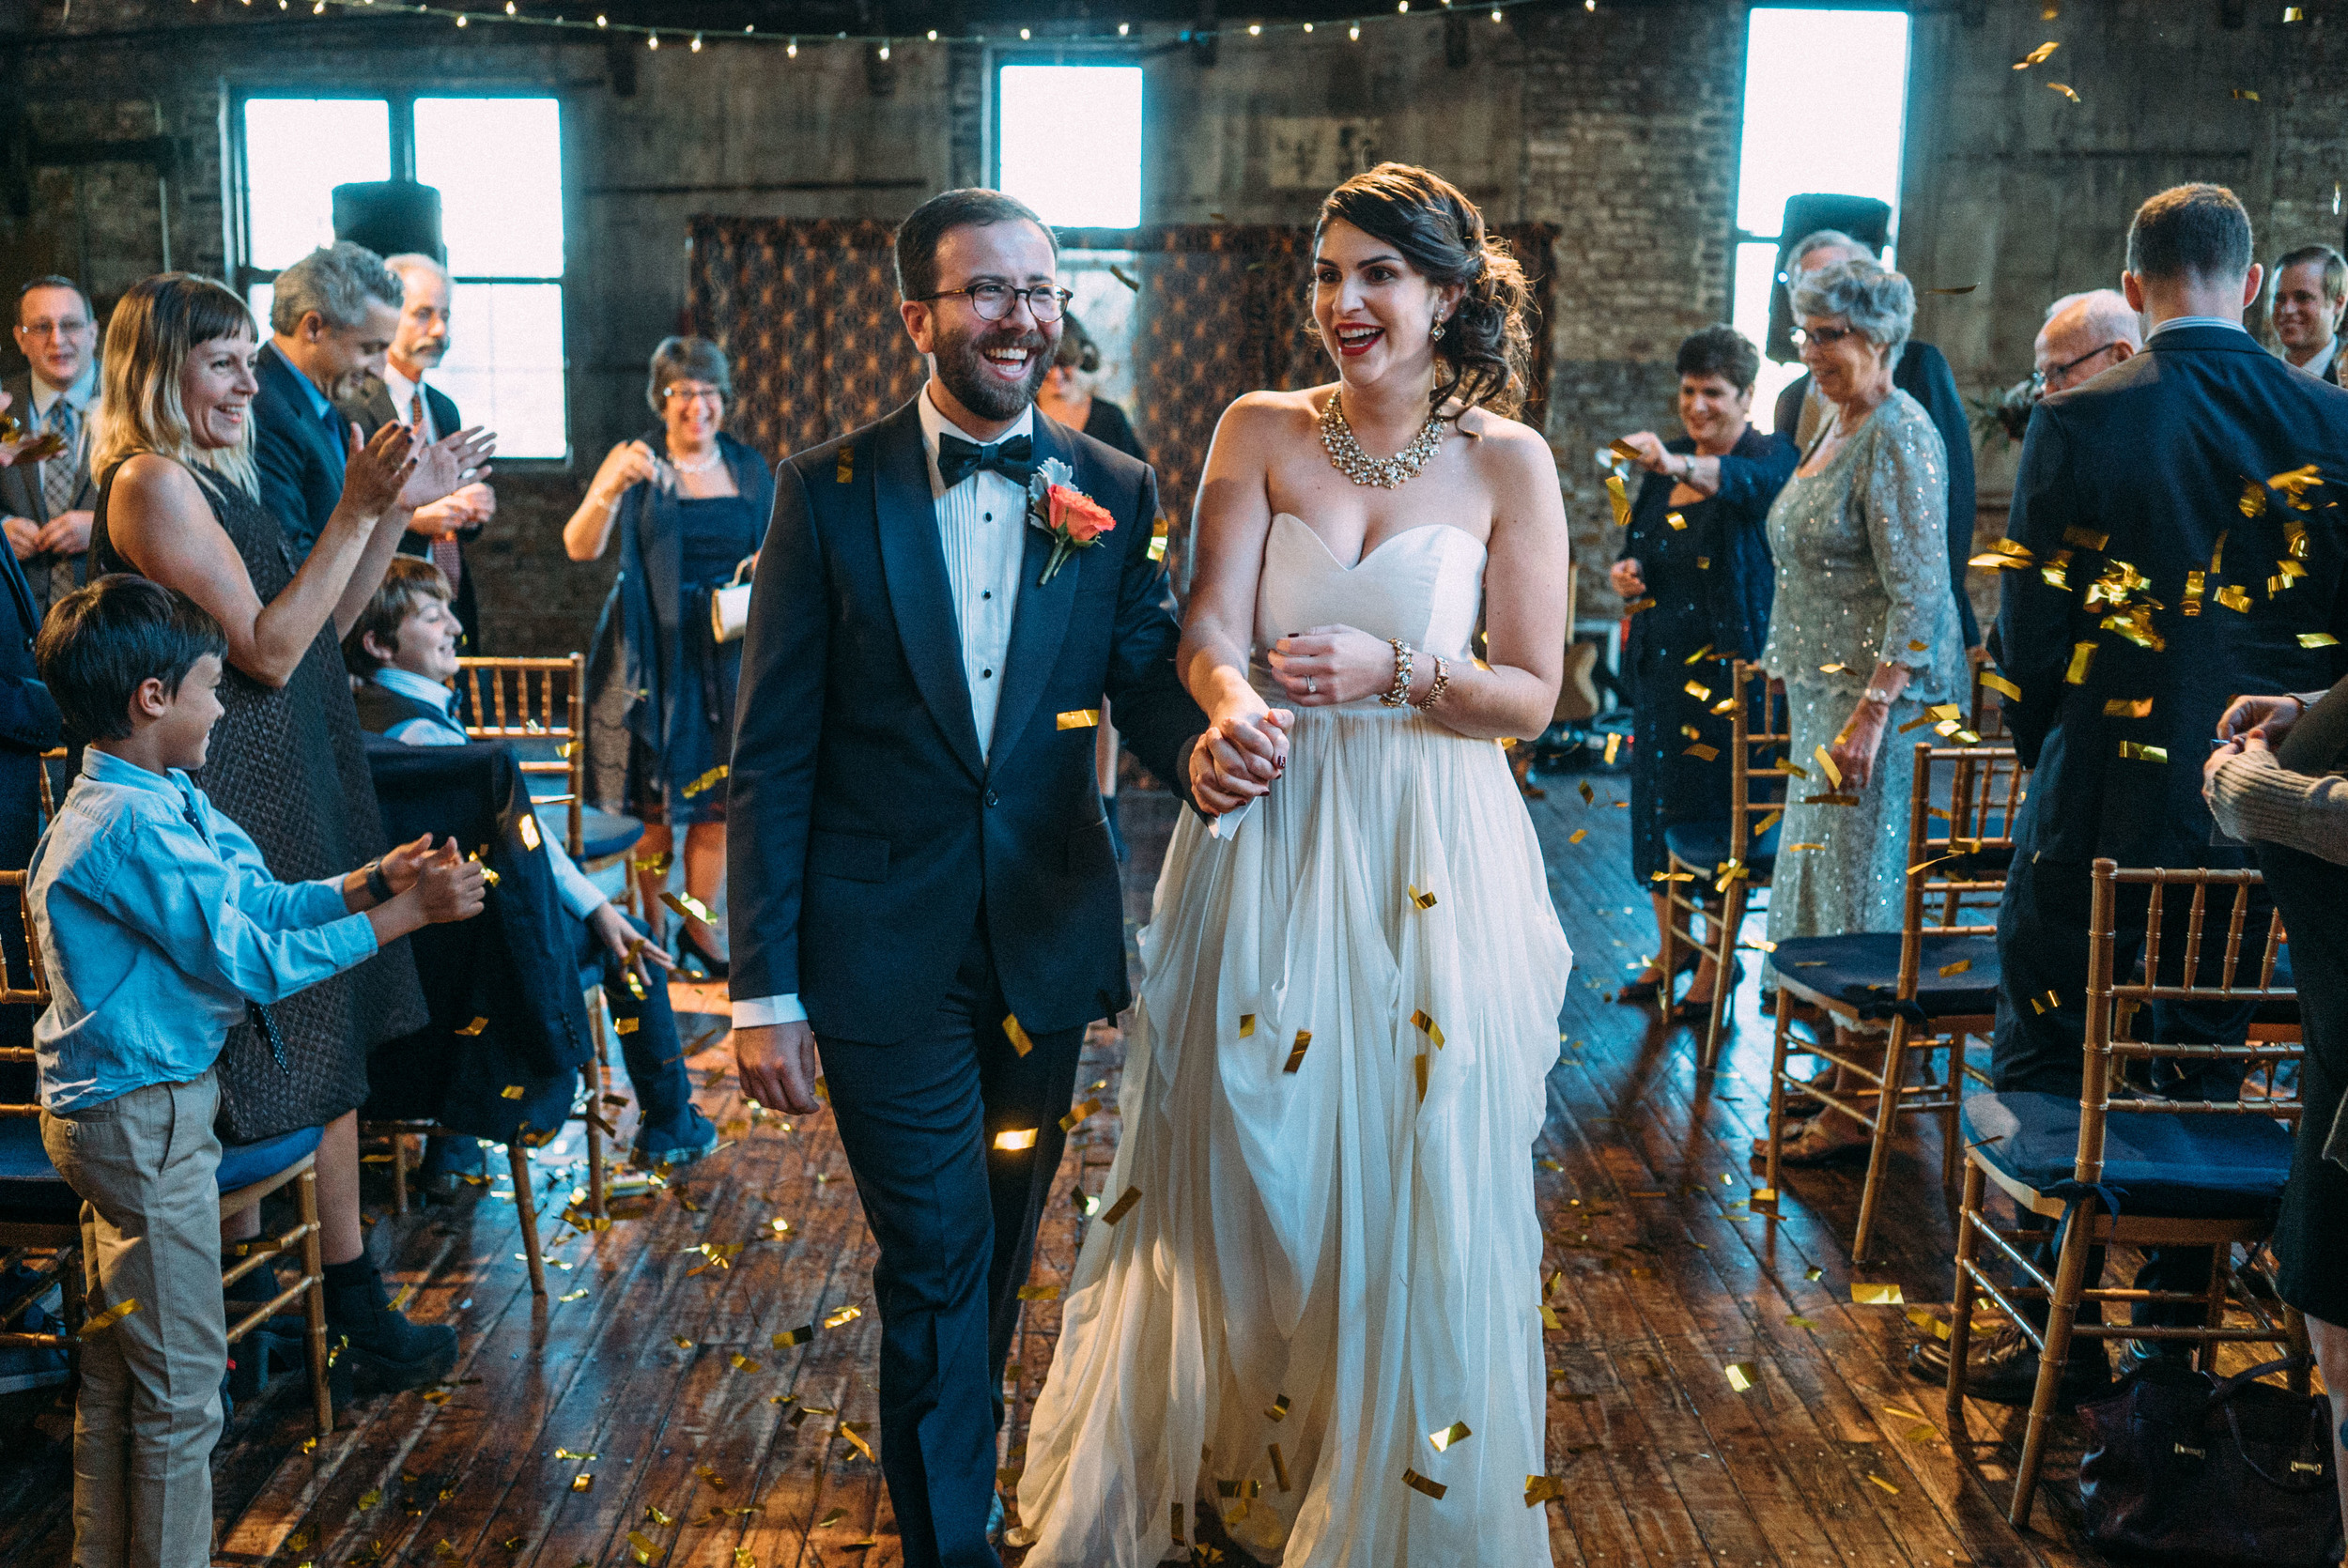 Photo by Oresti Tsonopoulos   https://www.theknot.com/marketplace/oresti-tsonopoulos-brooklyn-ny-821687